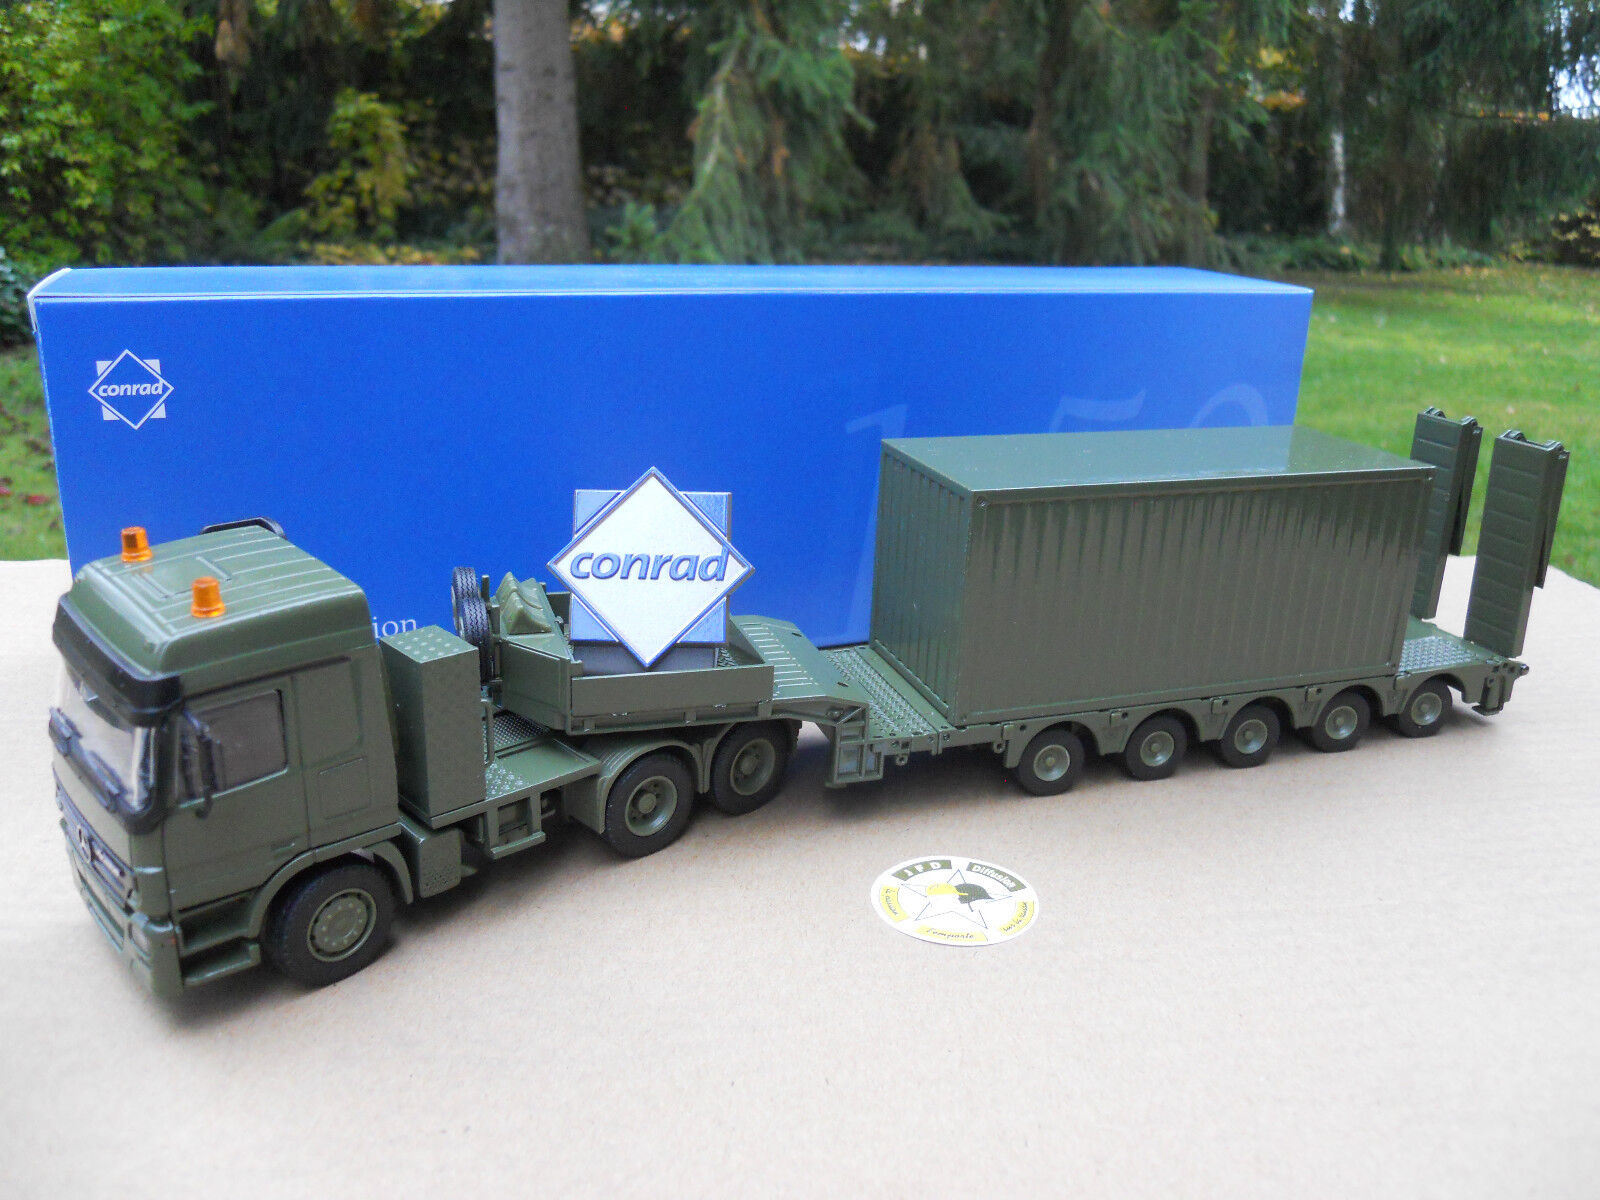 CONRAD MILITARY MB 6X4 + MID 5 AXLES & CONTAINER + LOGO CONRAD